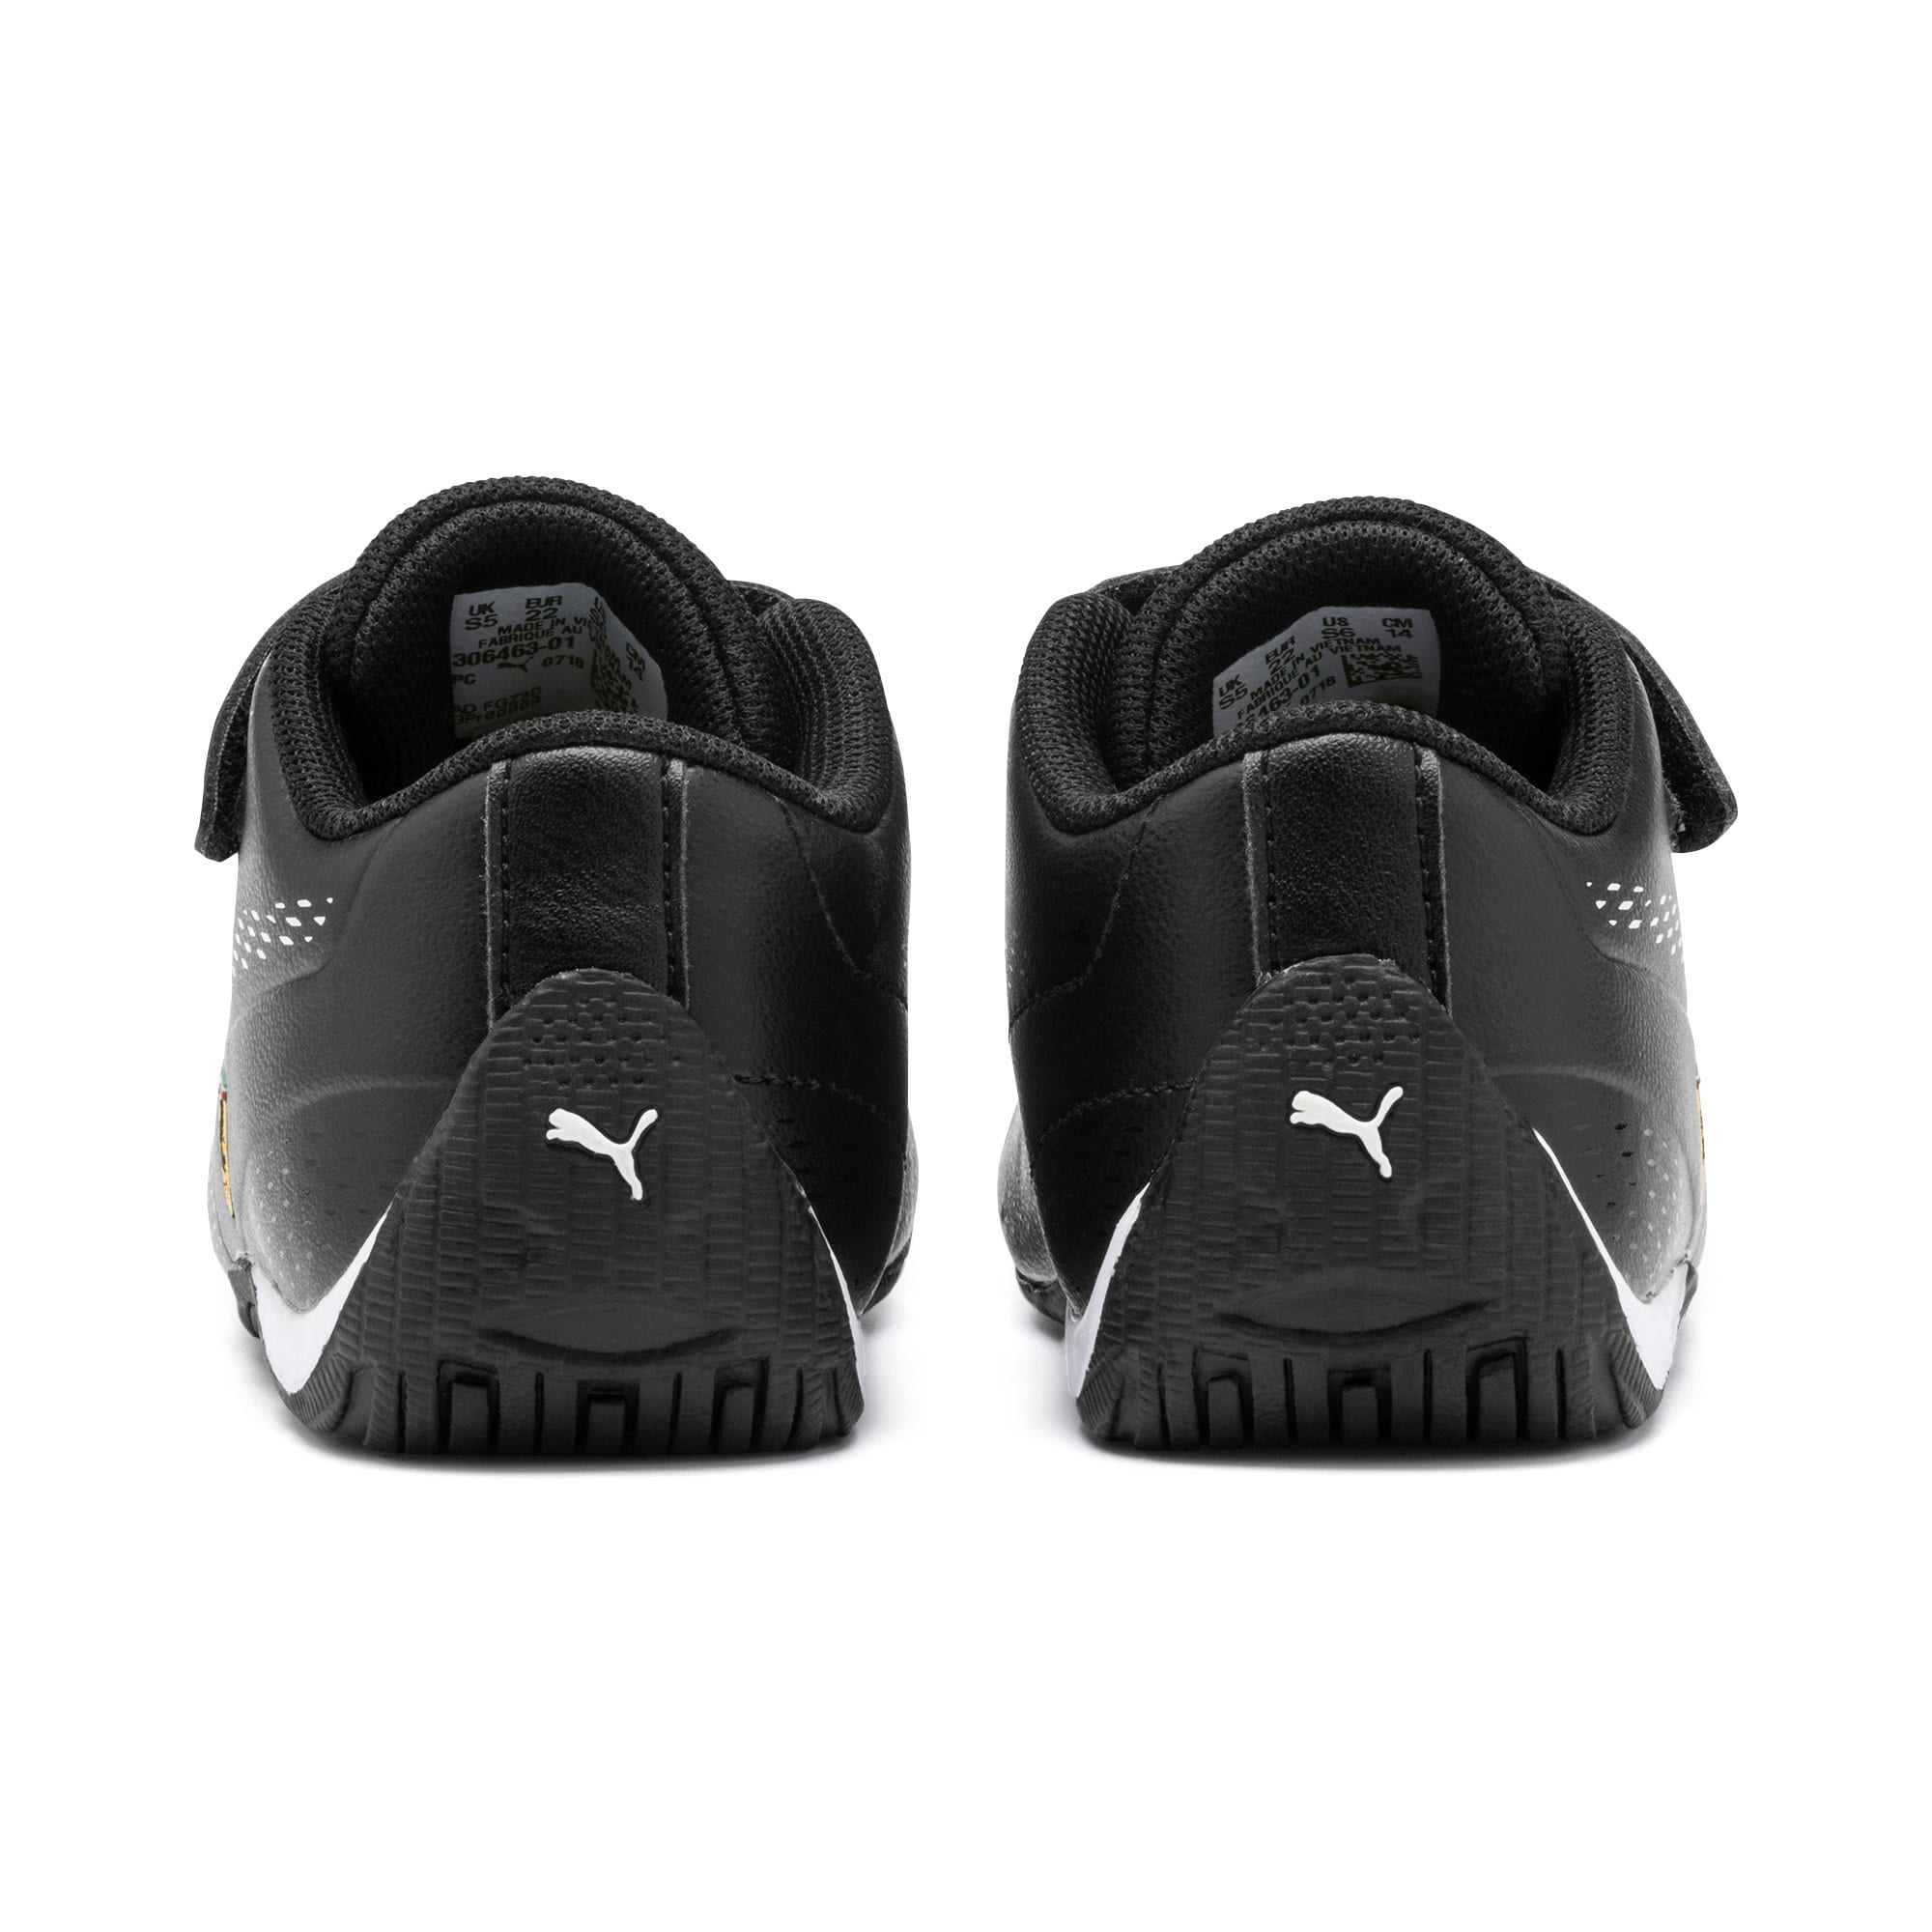 Thumbnail 3 of Scuderia Ferrari Drift Cat 5 Ultra II Toddler Shoes, Puma Black-Puma White, medium